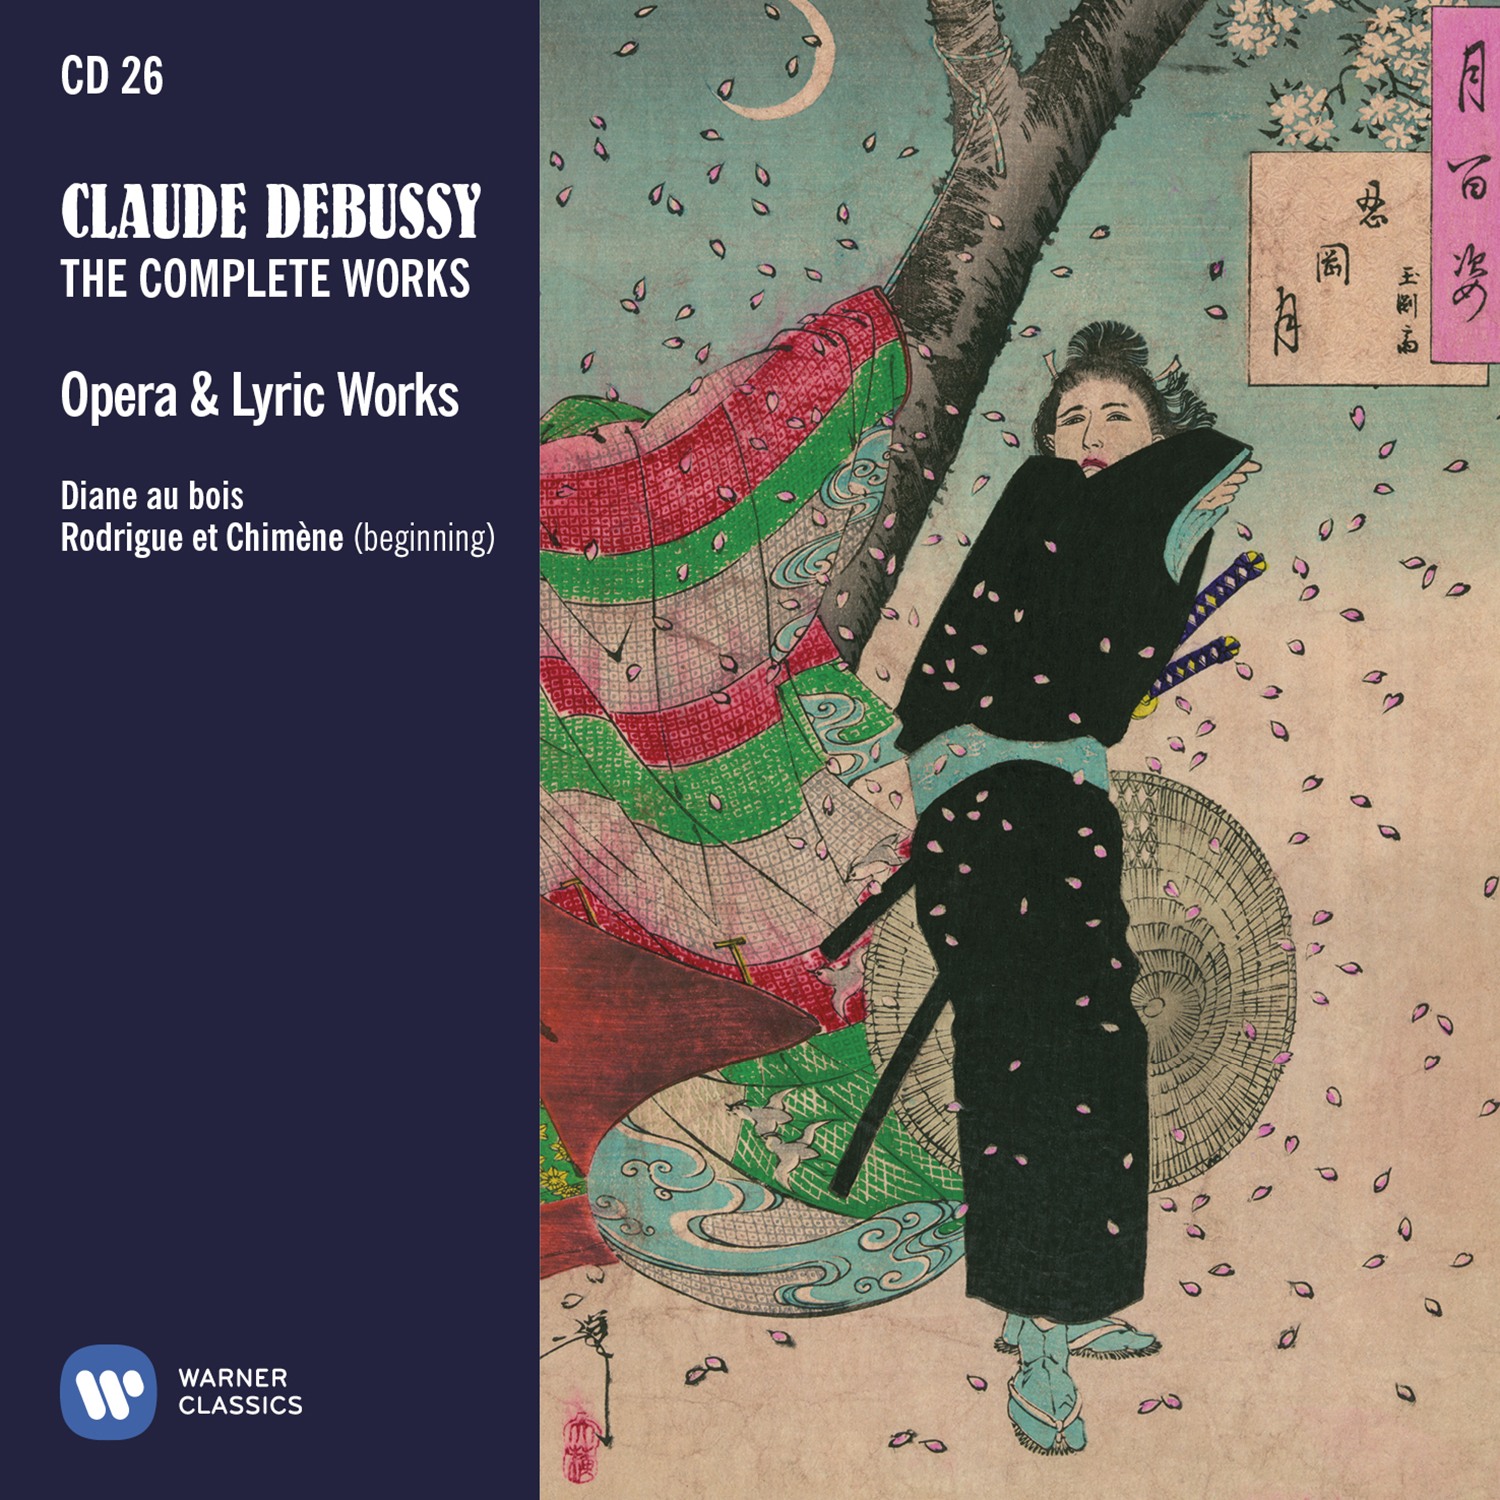 Debussy The complete works - Cover wallet CD26.jpg